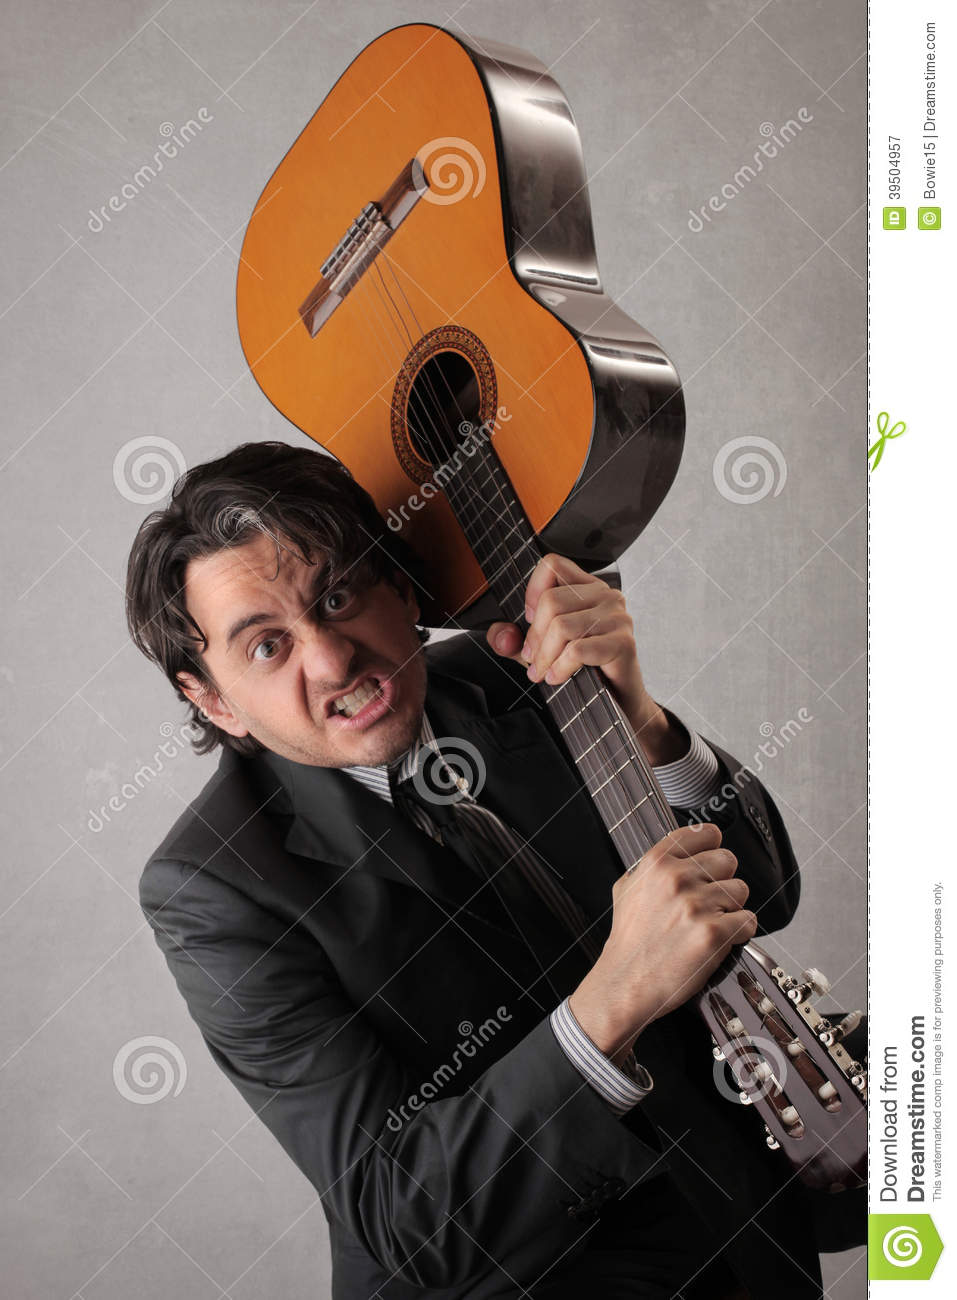 Angry businessman trying to break the guitar